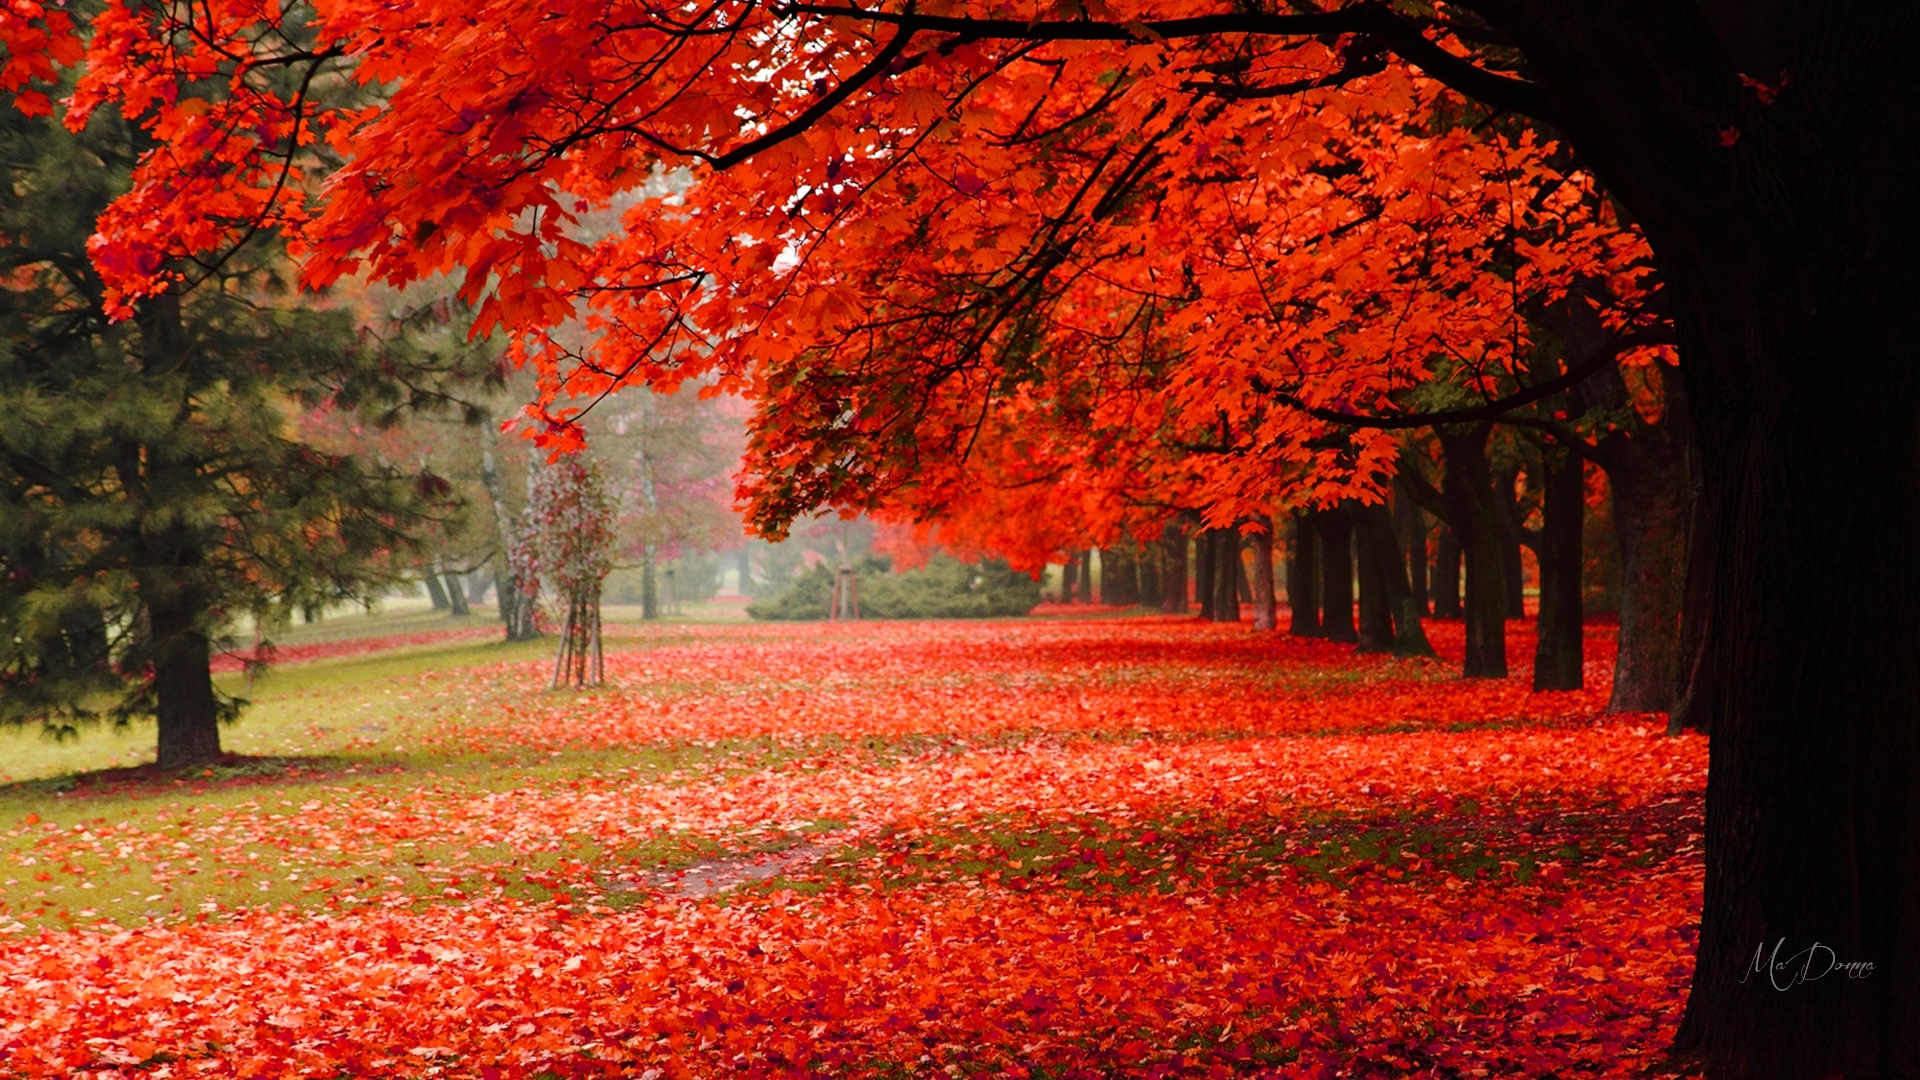 Fall Foliage Wallpaper Widescreen Tree In Autumn Park Hd Wallpaper Background Image